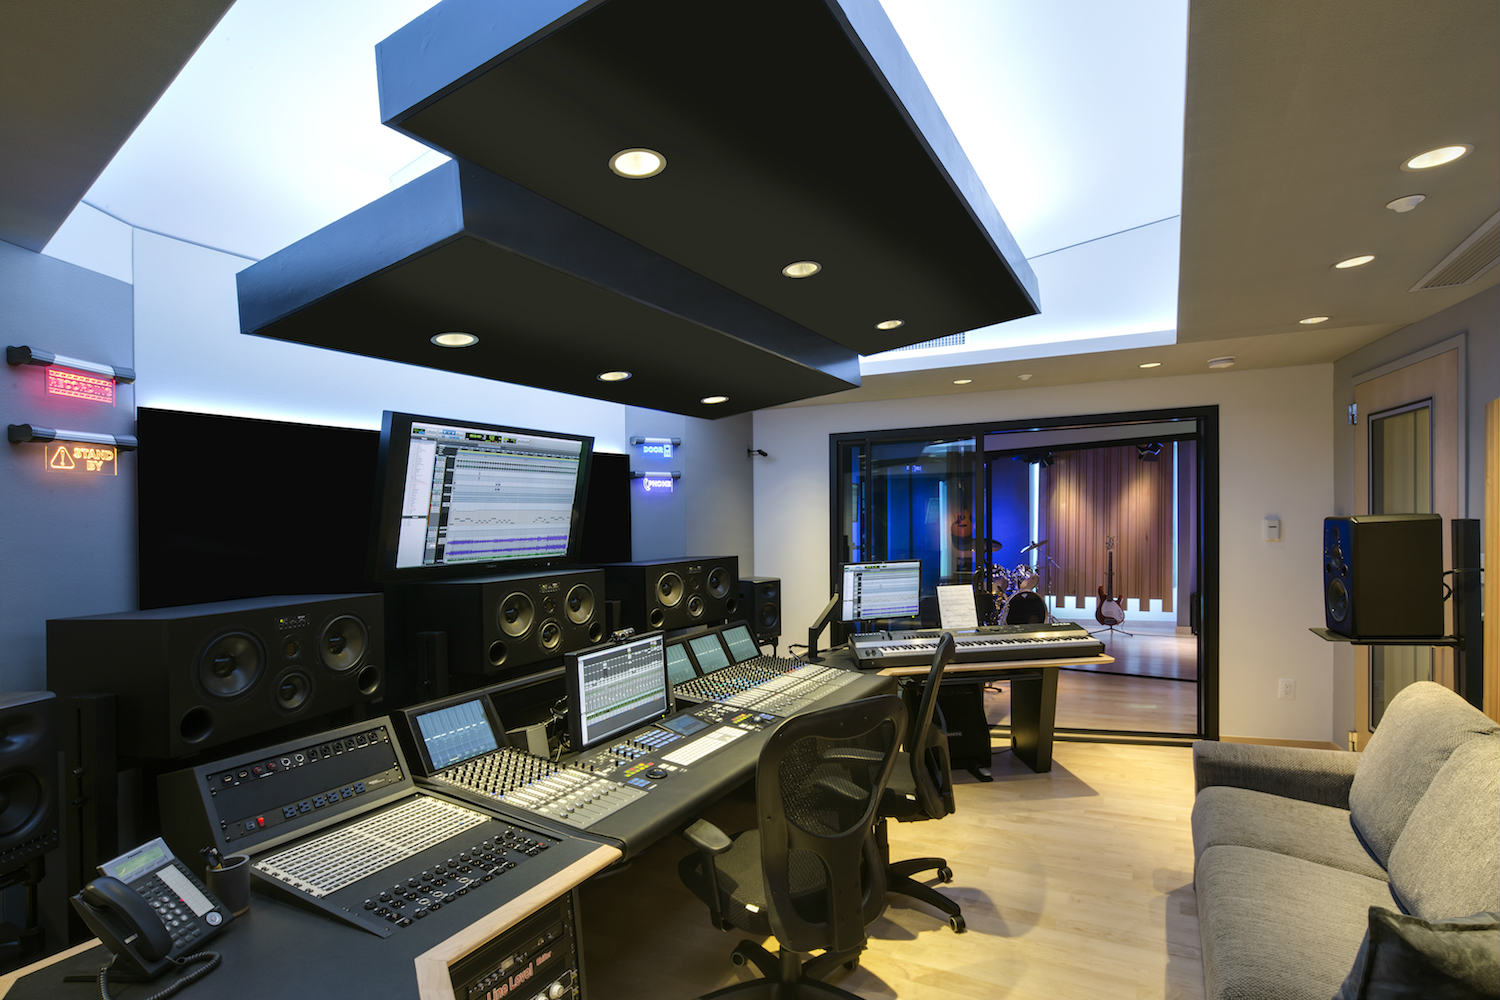 The MacPhails met WSDG to achieve a full up, professionally designed, acoustically superlative residential recording studio for their thriving audio productioStudio, photo vy